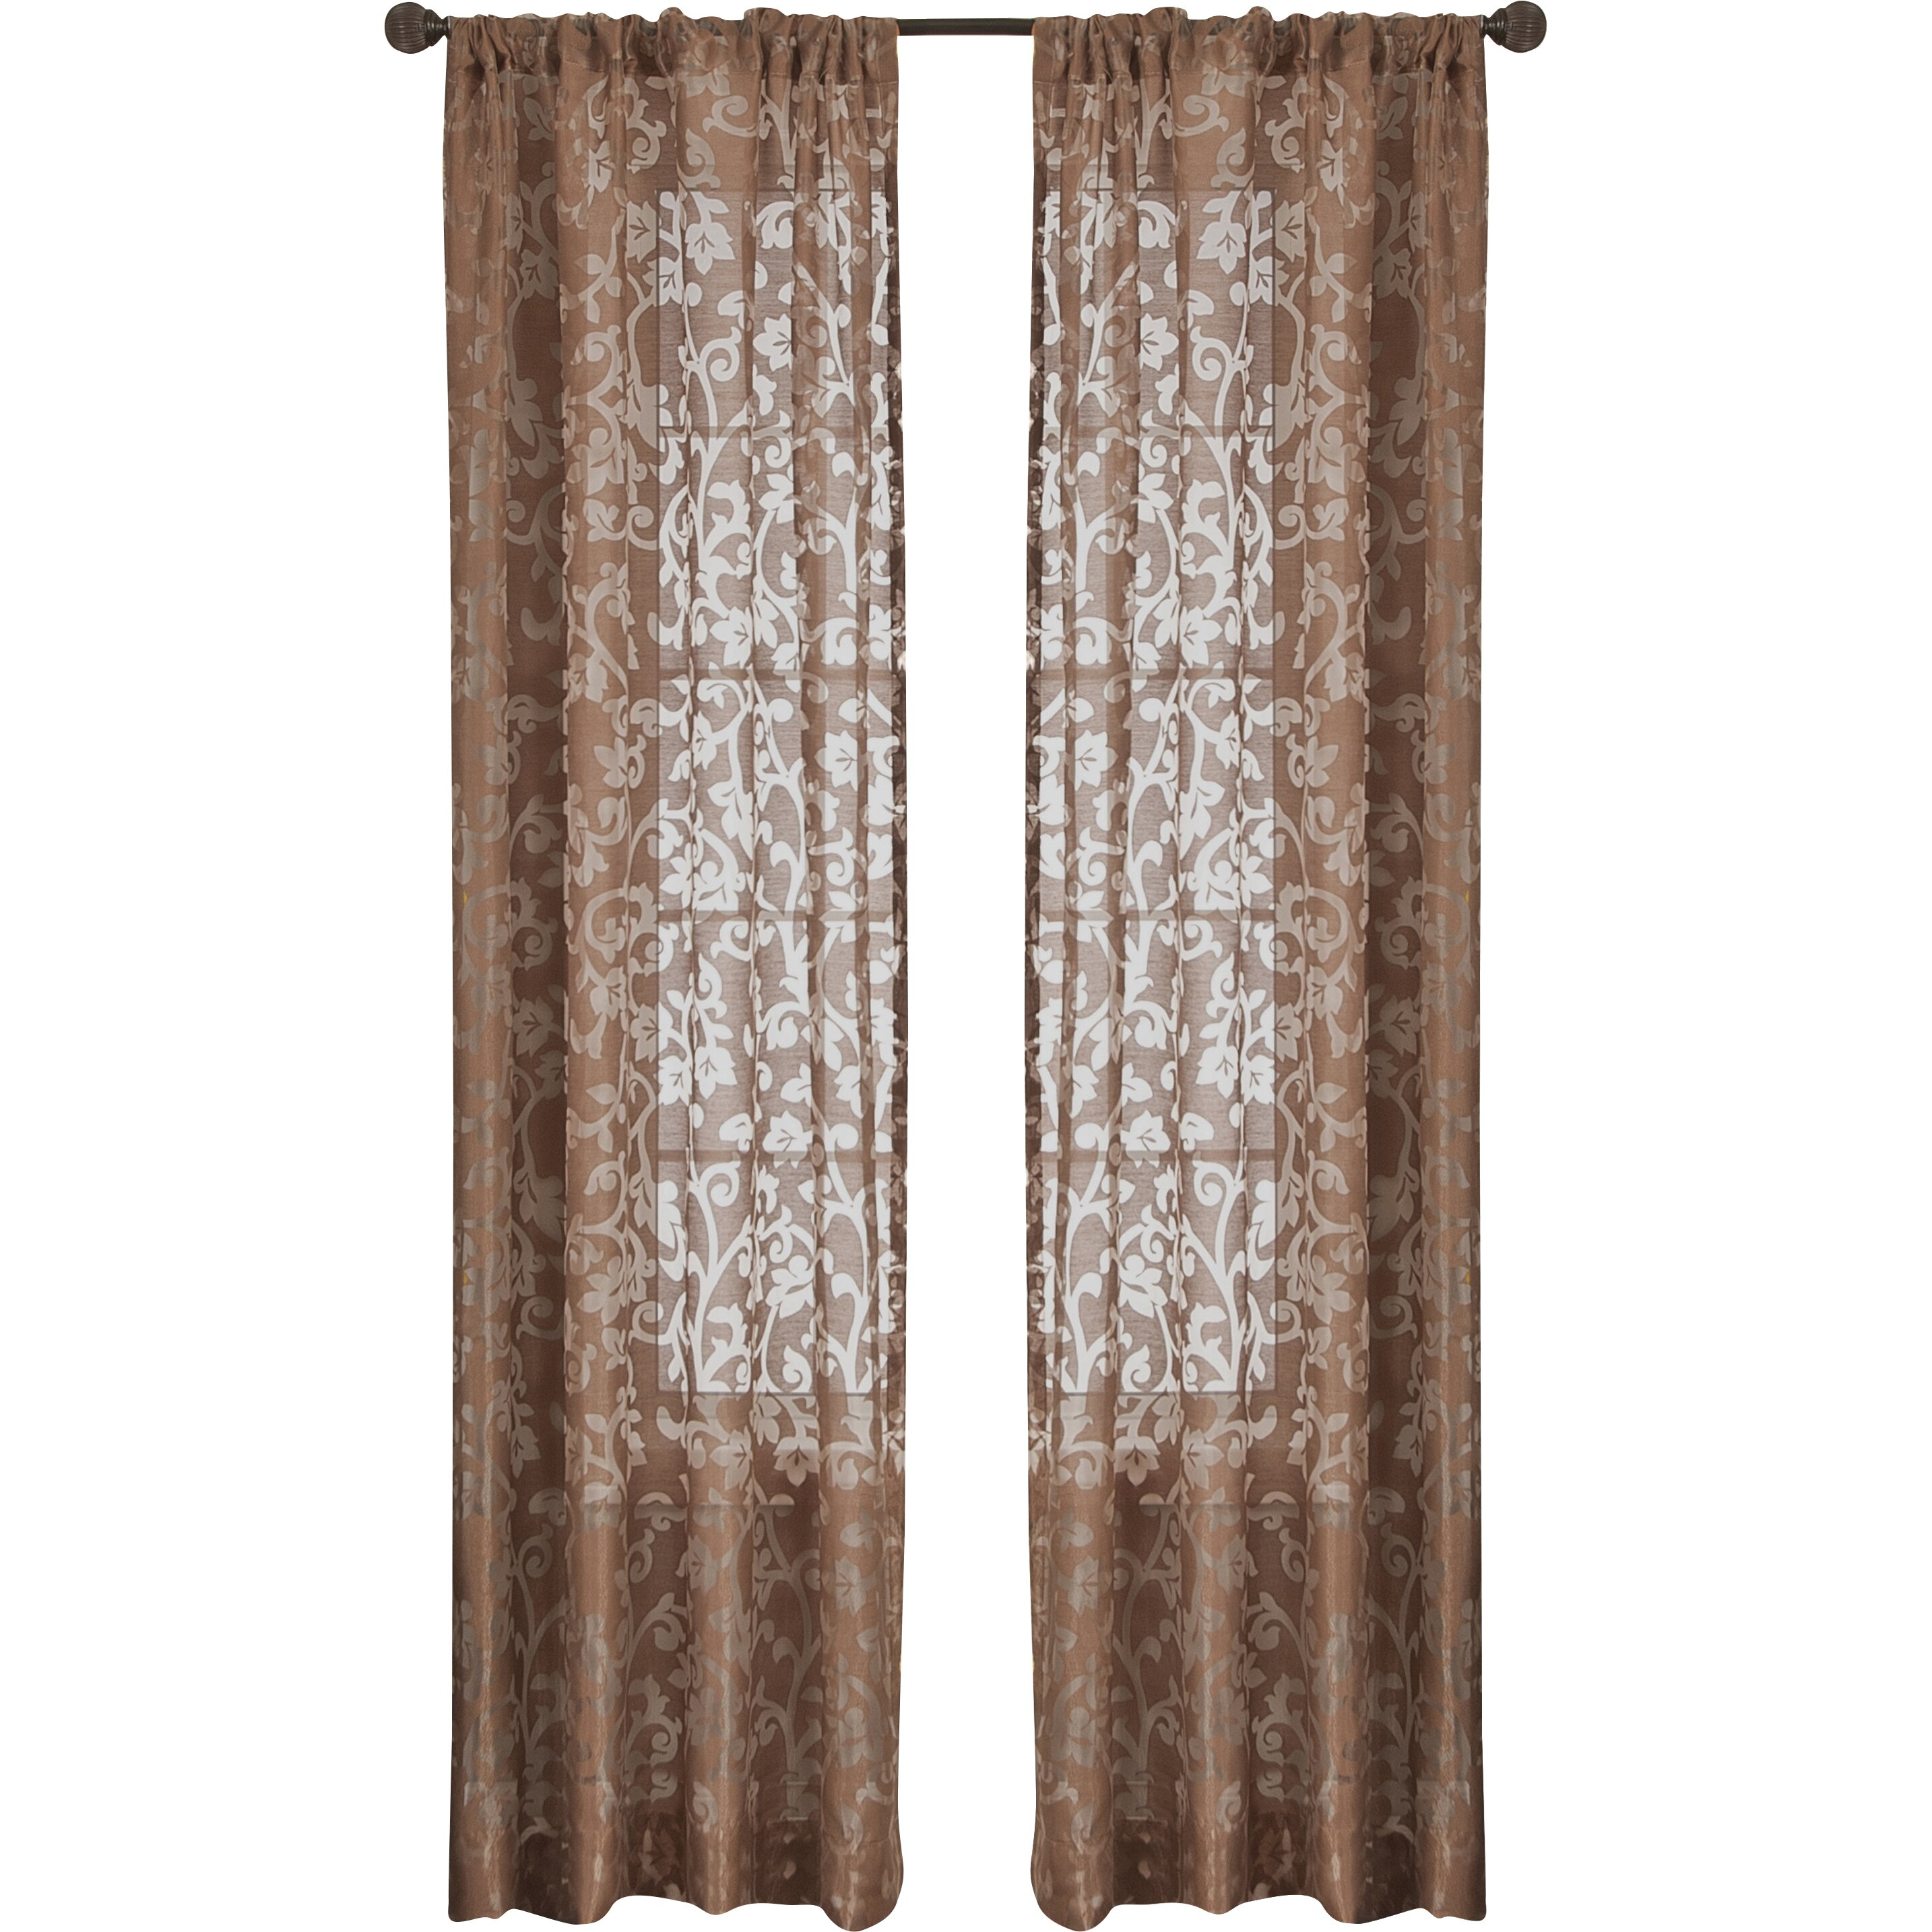 Captivating Rod Pocket Curtains Definition Curtain Sheers Meaning Textile